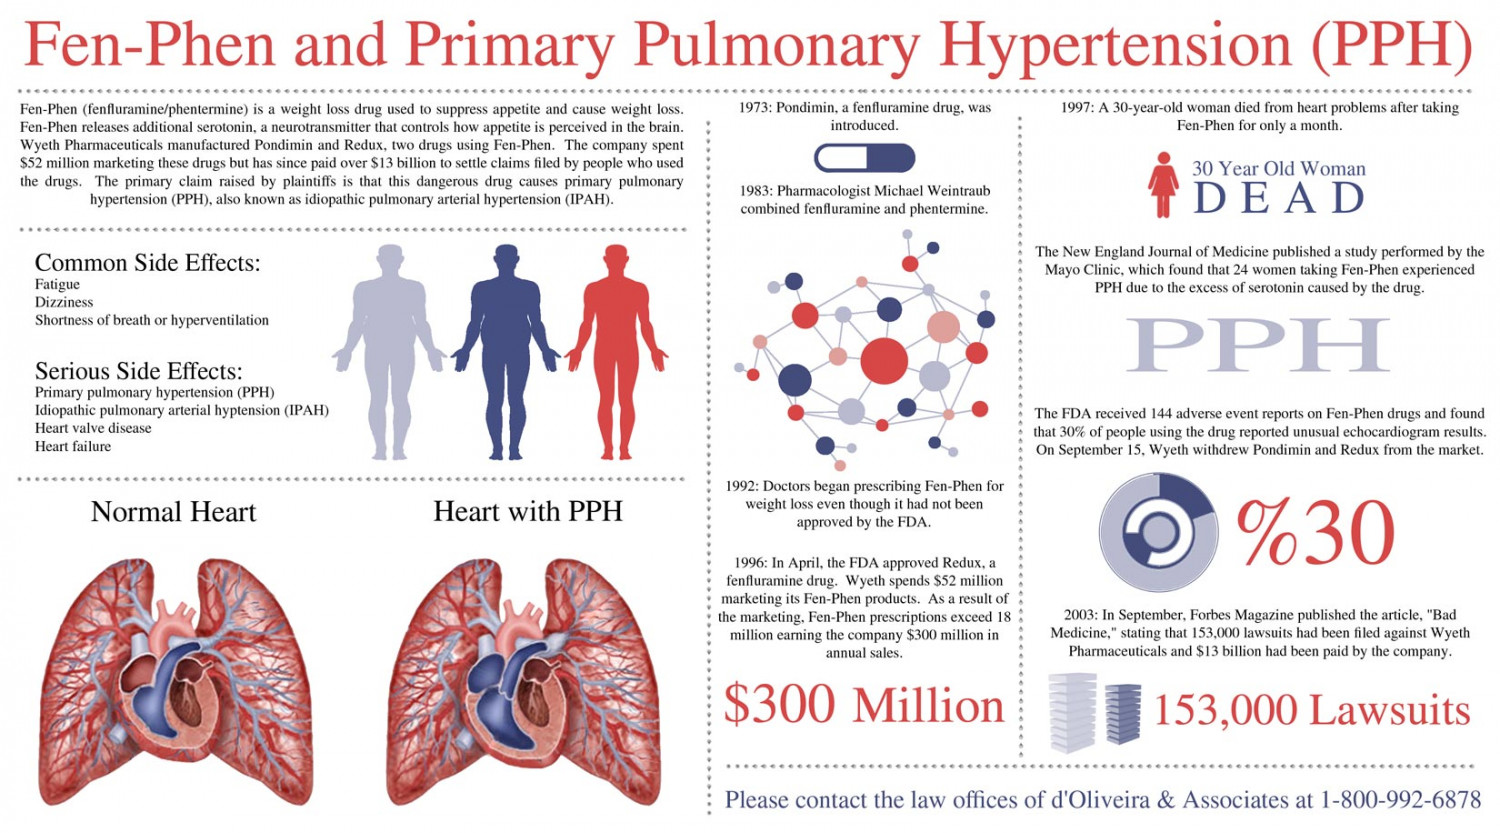 Fen-Phen and Primary Pulmonary Hypertension (PPH) | Visual.ly